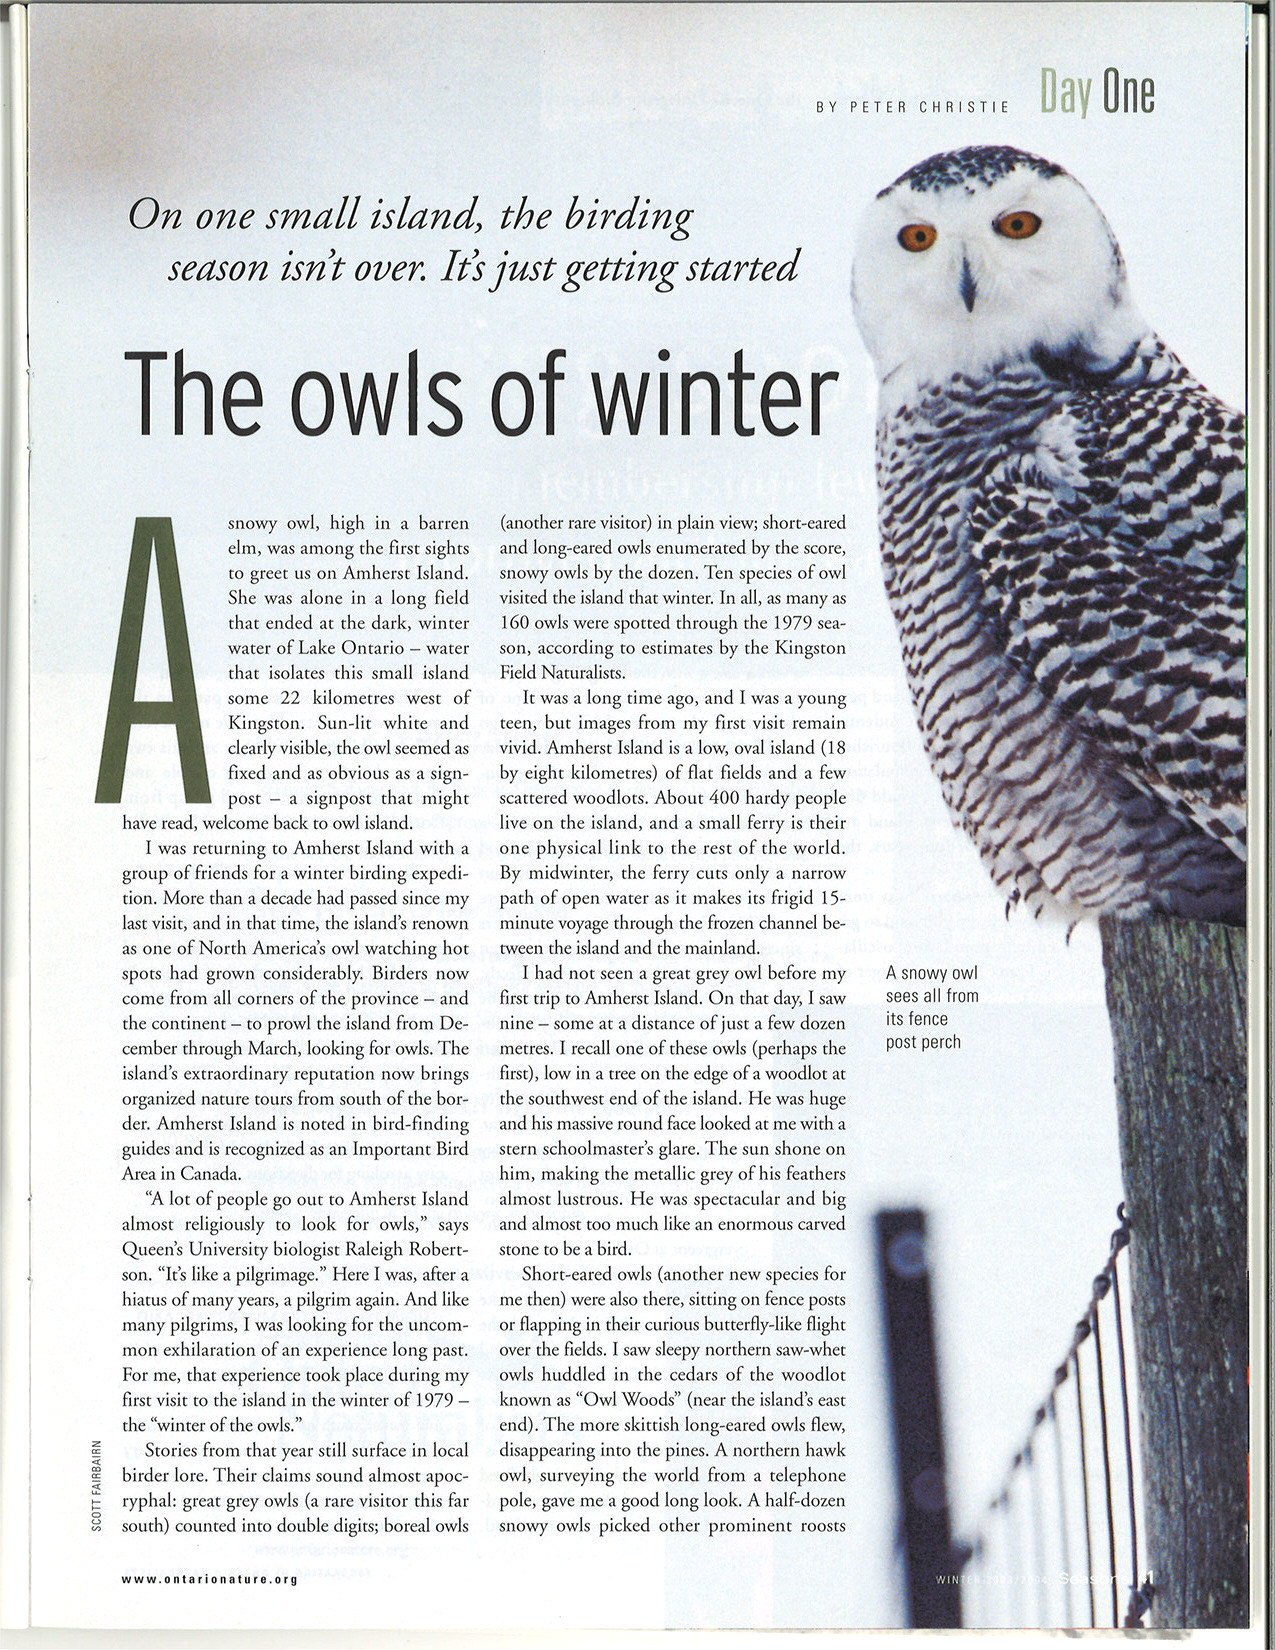 seasons_2003_v43_i4_d_Day_One_the_owls_of_winter_41